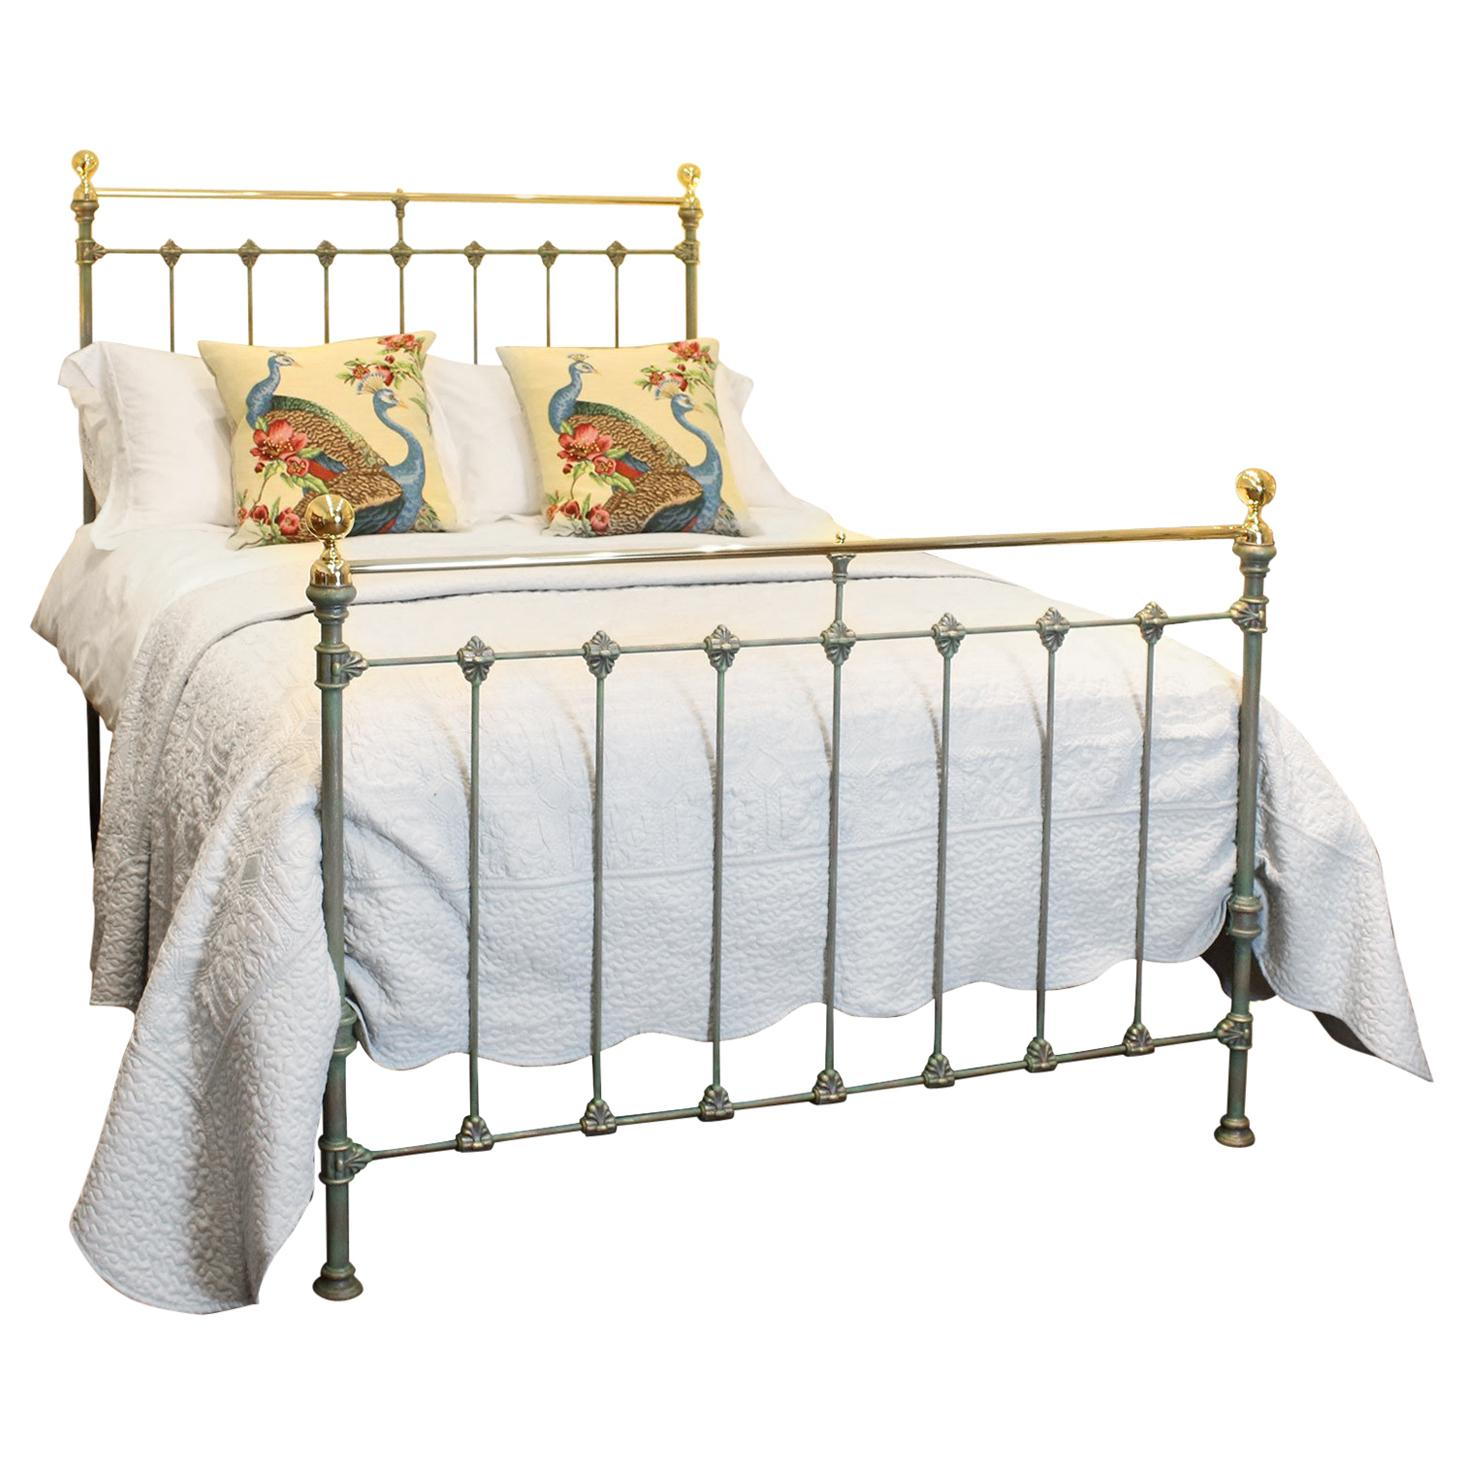 Early 20th Century Beds And Bed Frames 117 For Sale At 1stdibs